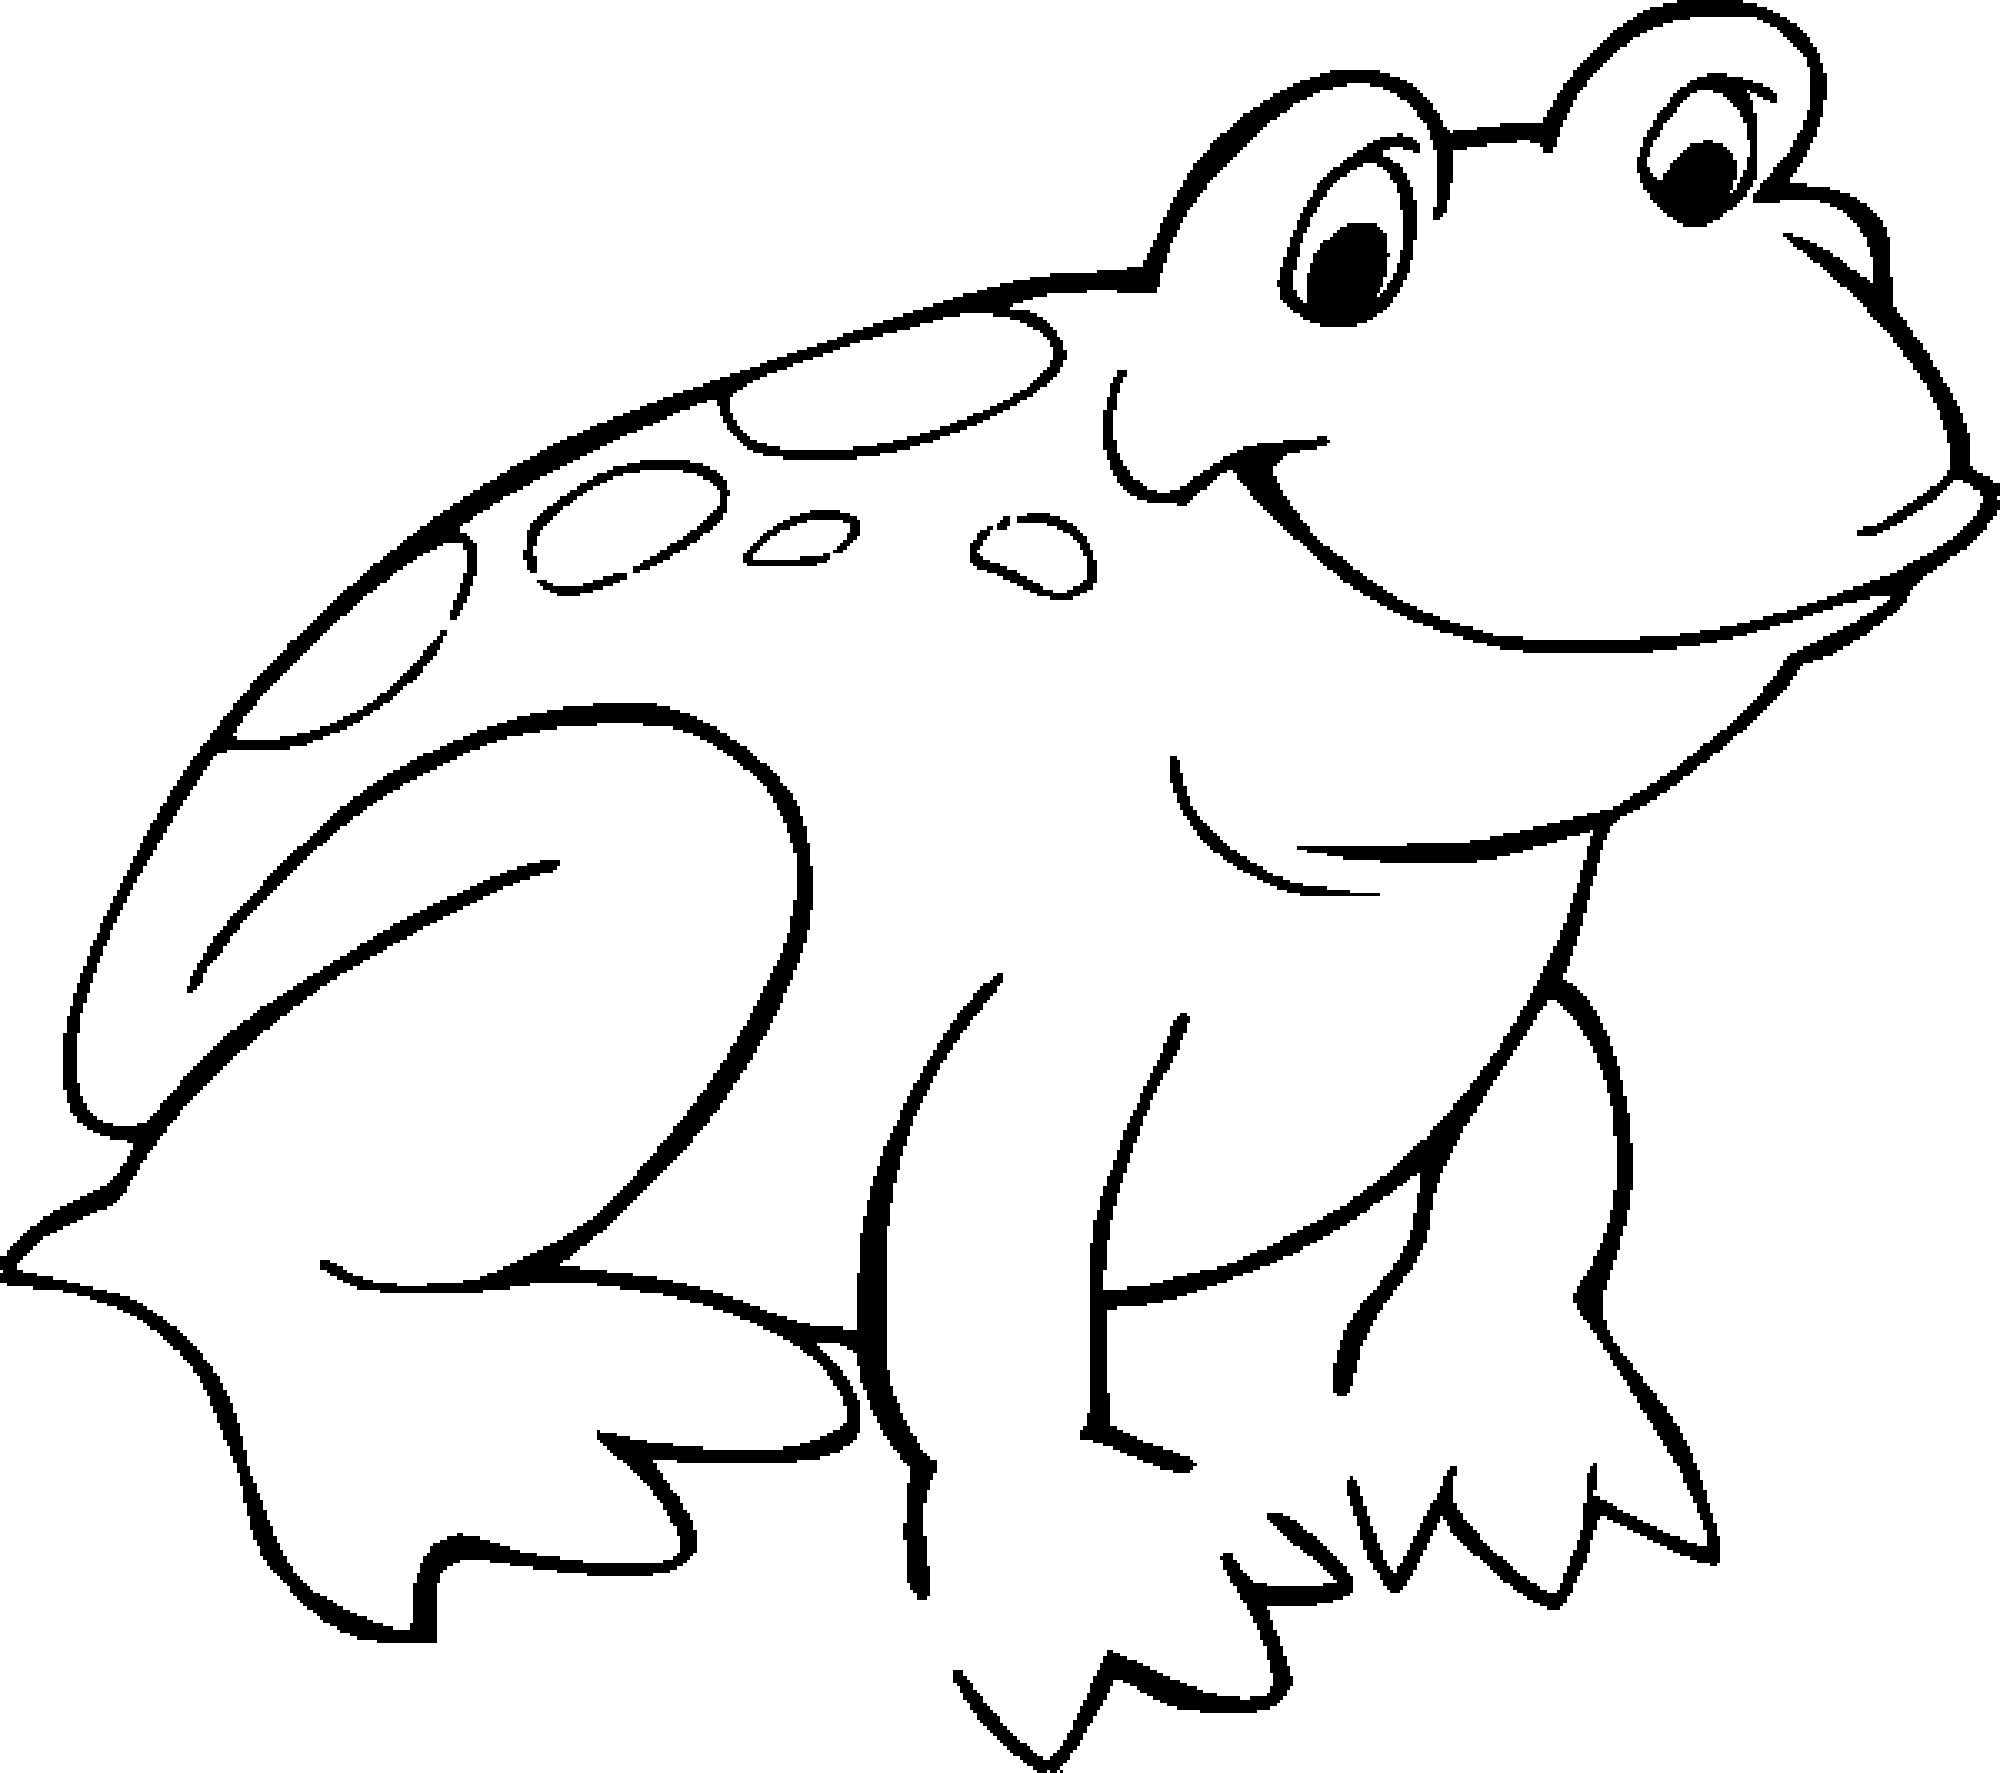 2000x1773 Clever Ideas Frog Coloring Pages For Adults Toddlers Adult